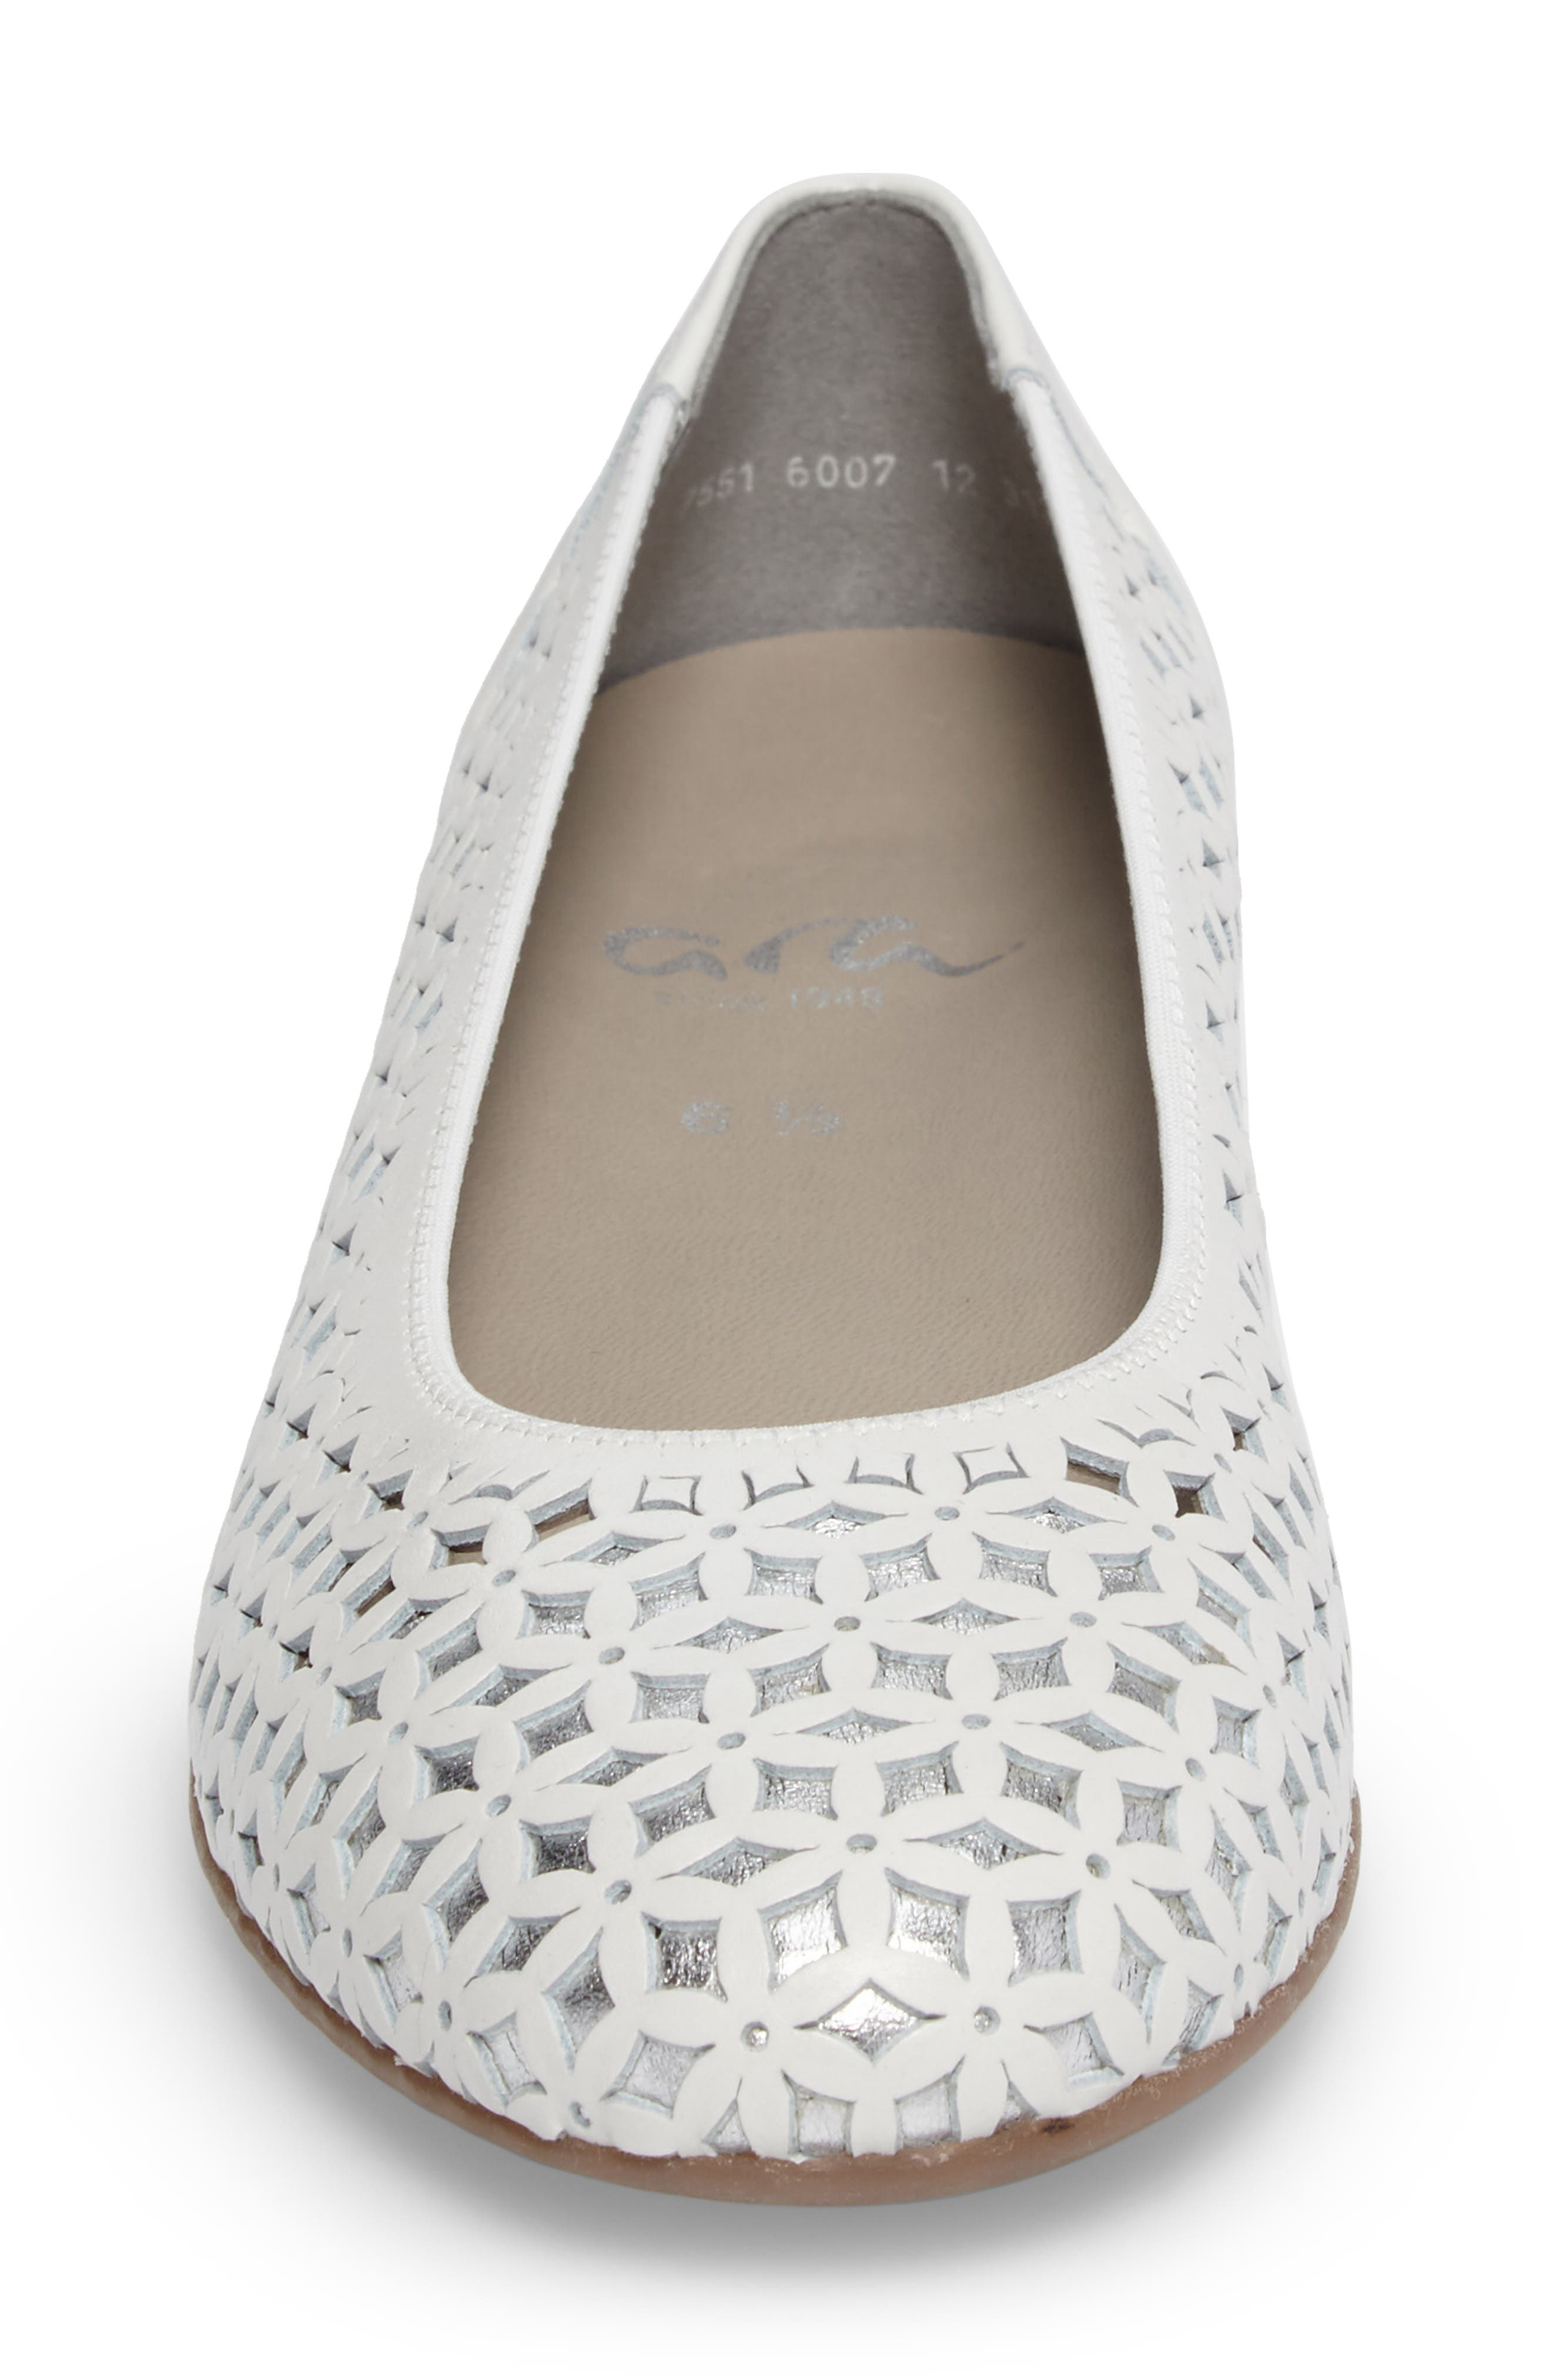 Stephanie Perforated Ballet Flat,                             Alternate thumbnail 4, color,                             White Leather